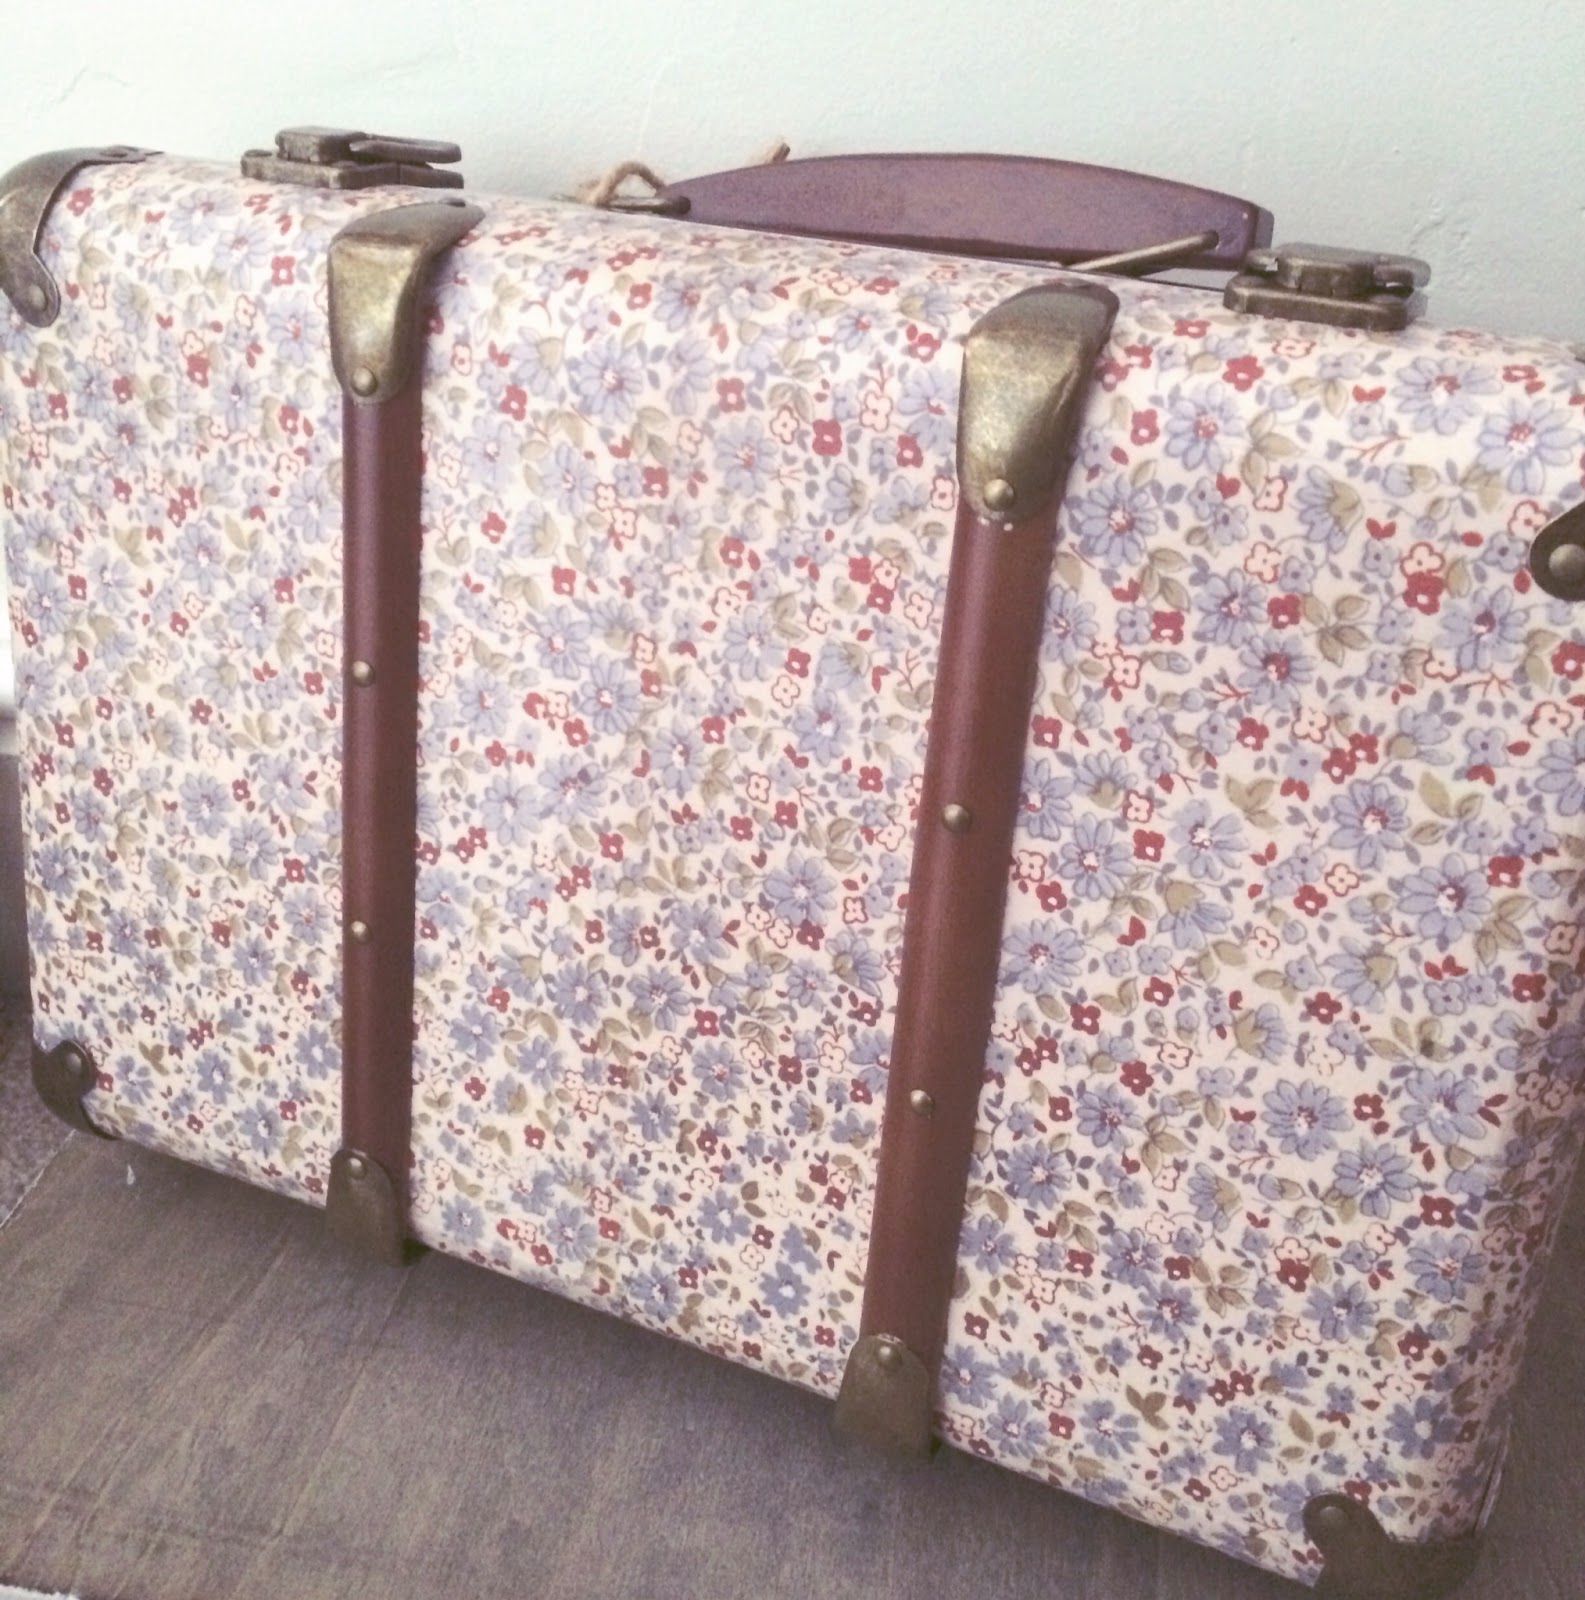 http://lovehijab.tictail.com/product/vintage-mini-blue-daisy-suitcase